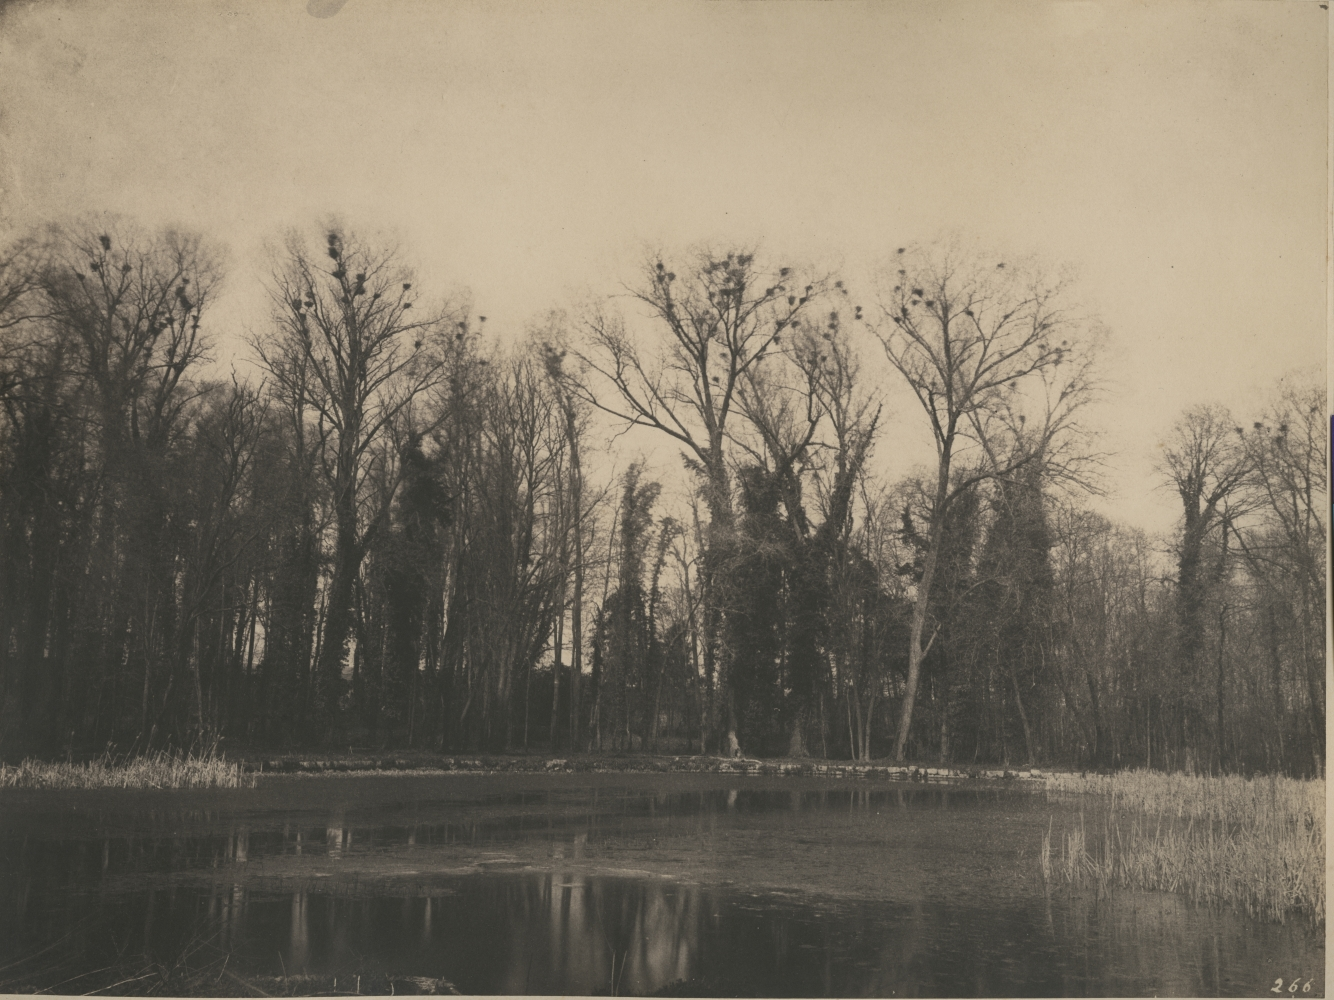 """Eugène CUVELIER (French, 1837-1900) """"Parc de Courances, nids de corbeaux"""", 1860s Salt print 25.4 x 33.6 cm, mounted Numbered """"266"""" in the negative. Titled in pencil on mount."""